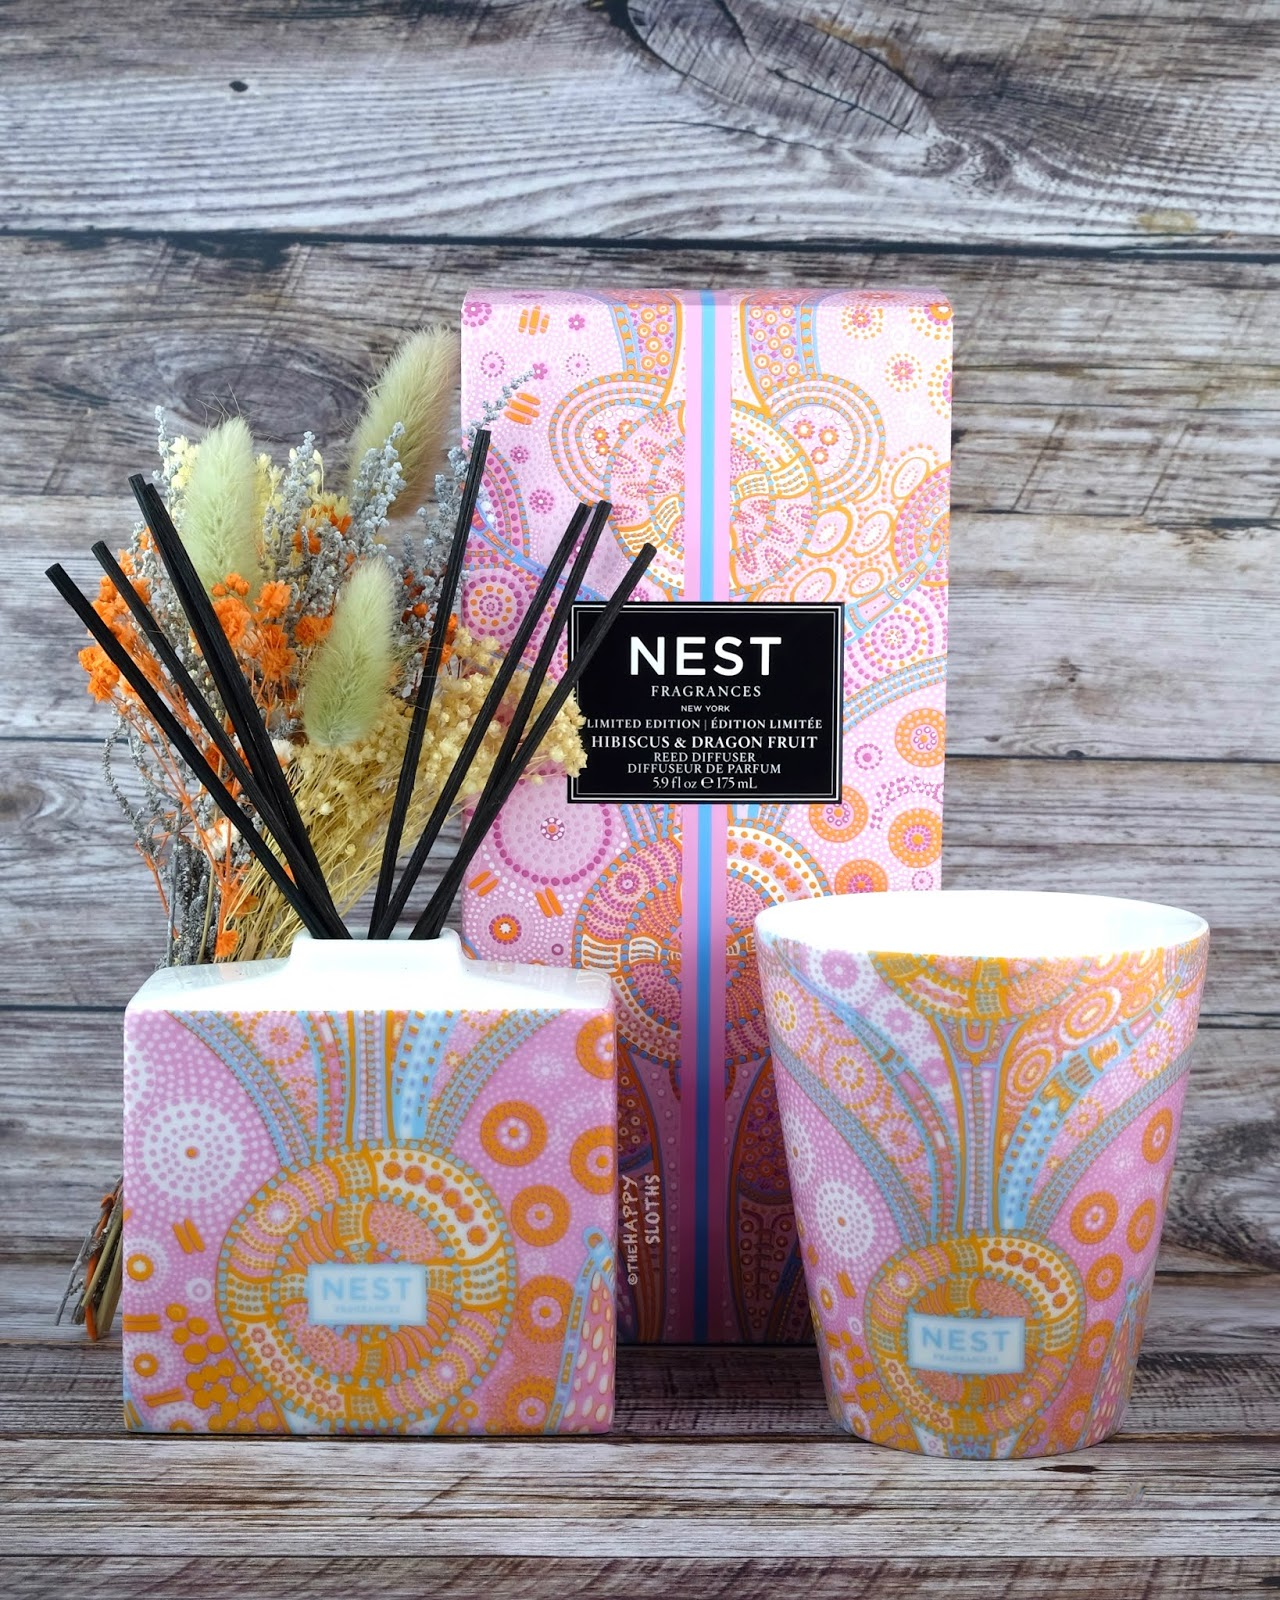 NEST Fragrances | Hibiscus & Dragonfruit Scented Candle & Reed Diffuser: Review